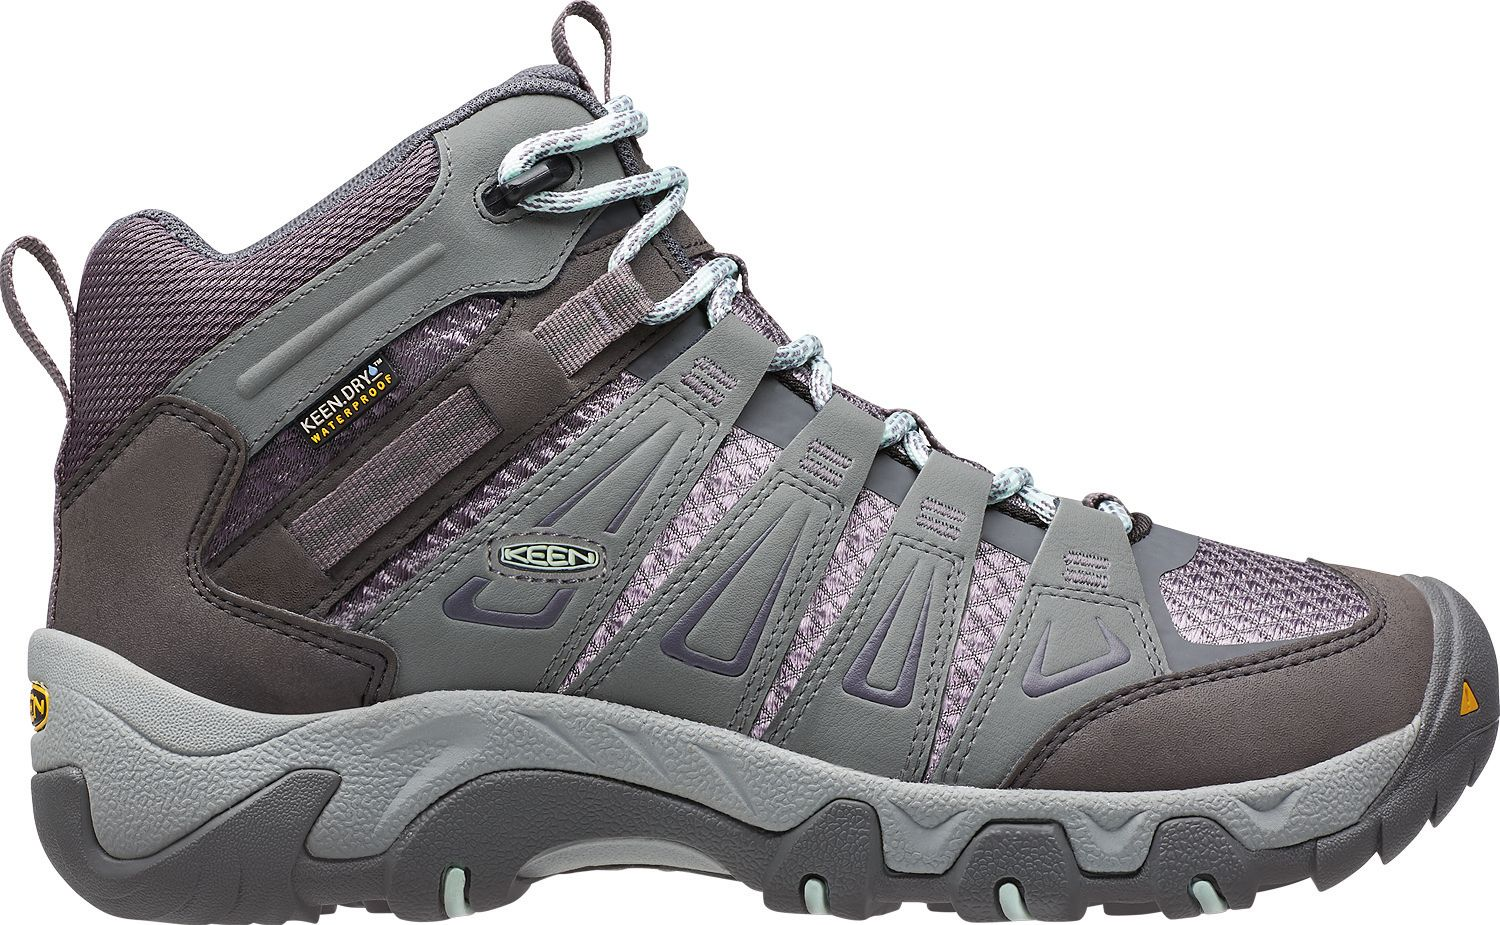 mid boots merrell us comfortable comforter boot reviews customer most rated in ventilator best product bracken helpful purple pcr women m hiking s moab